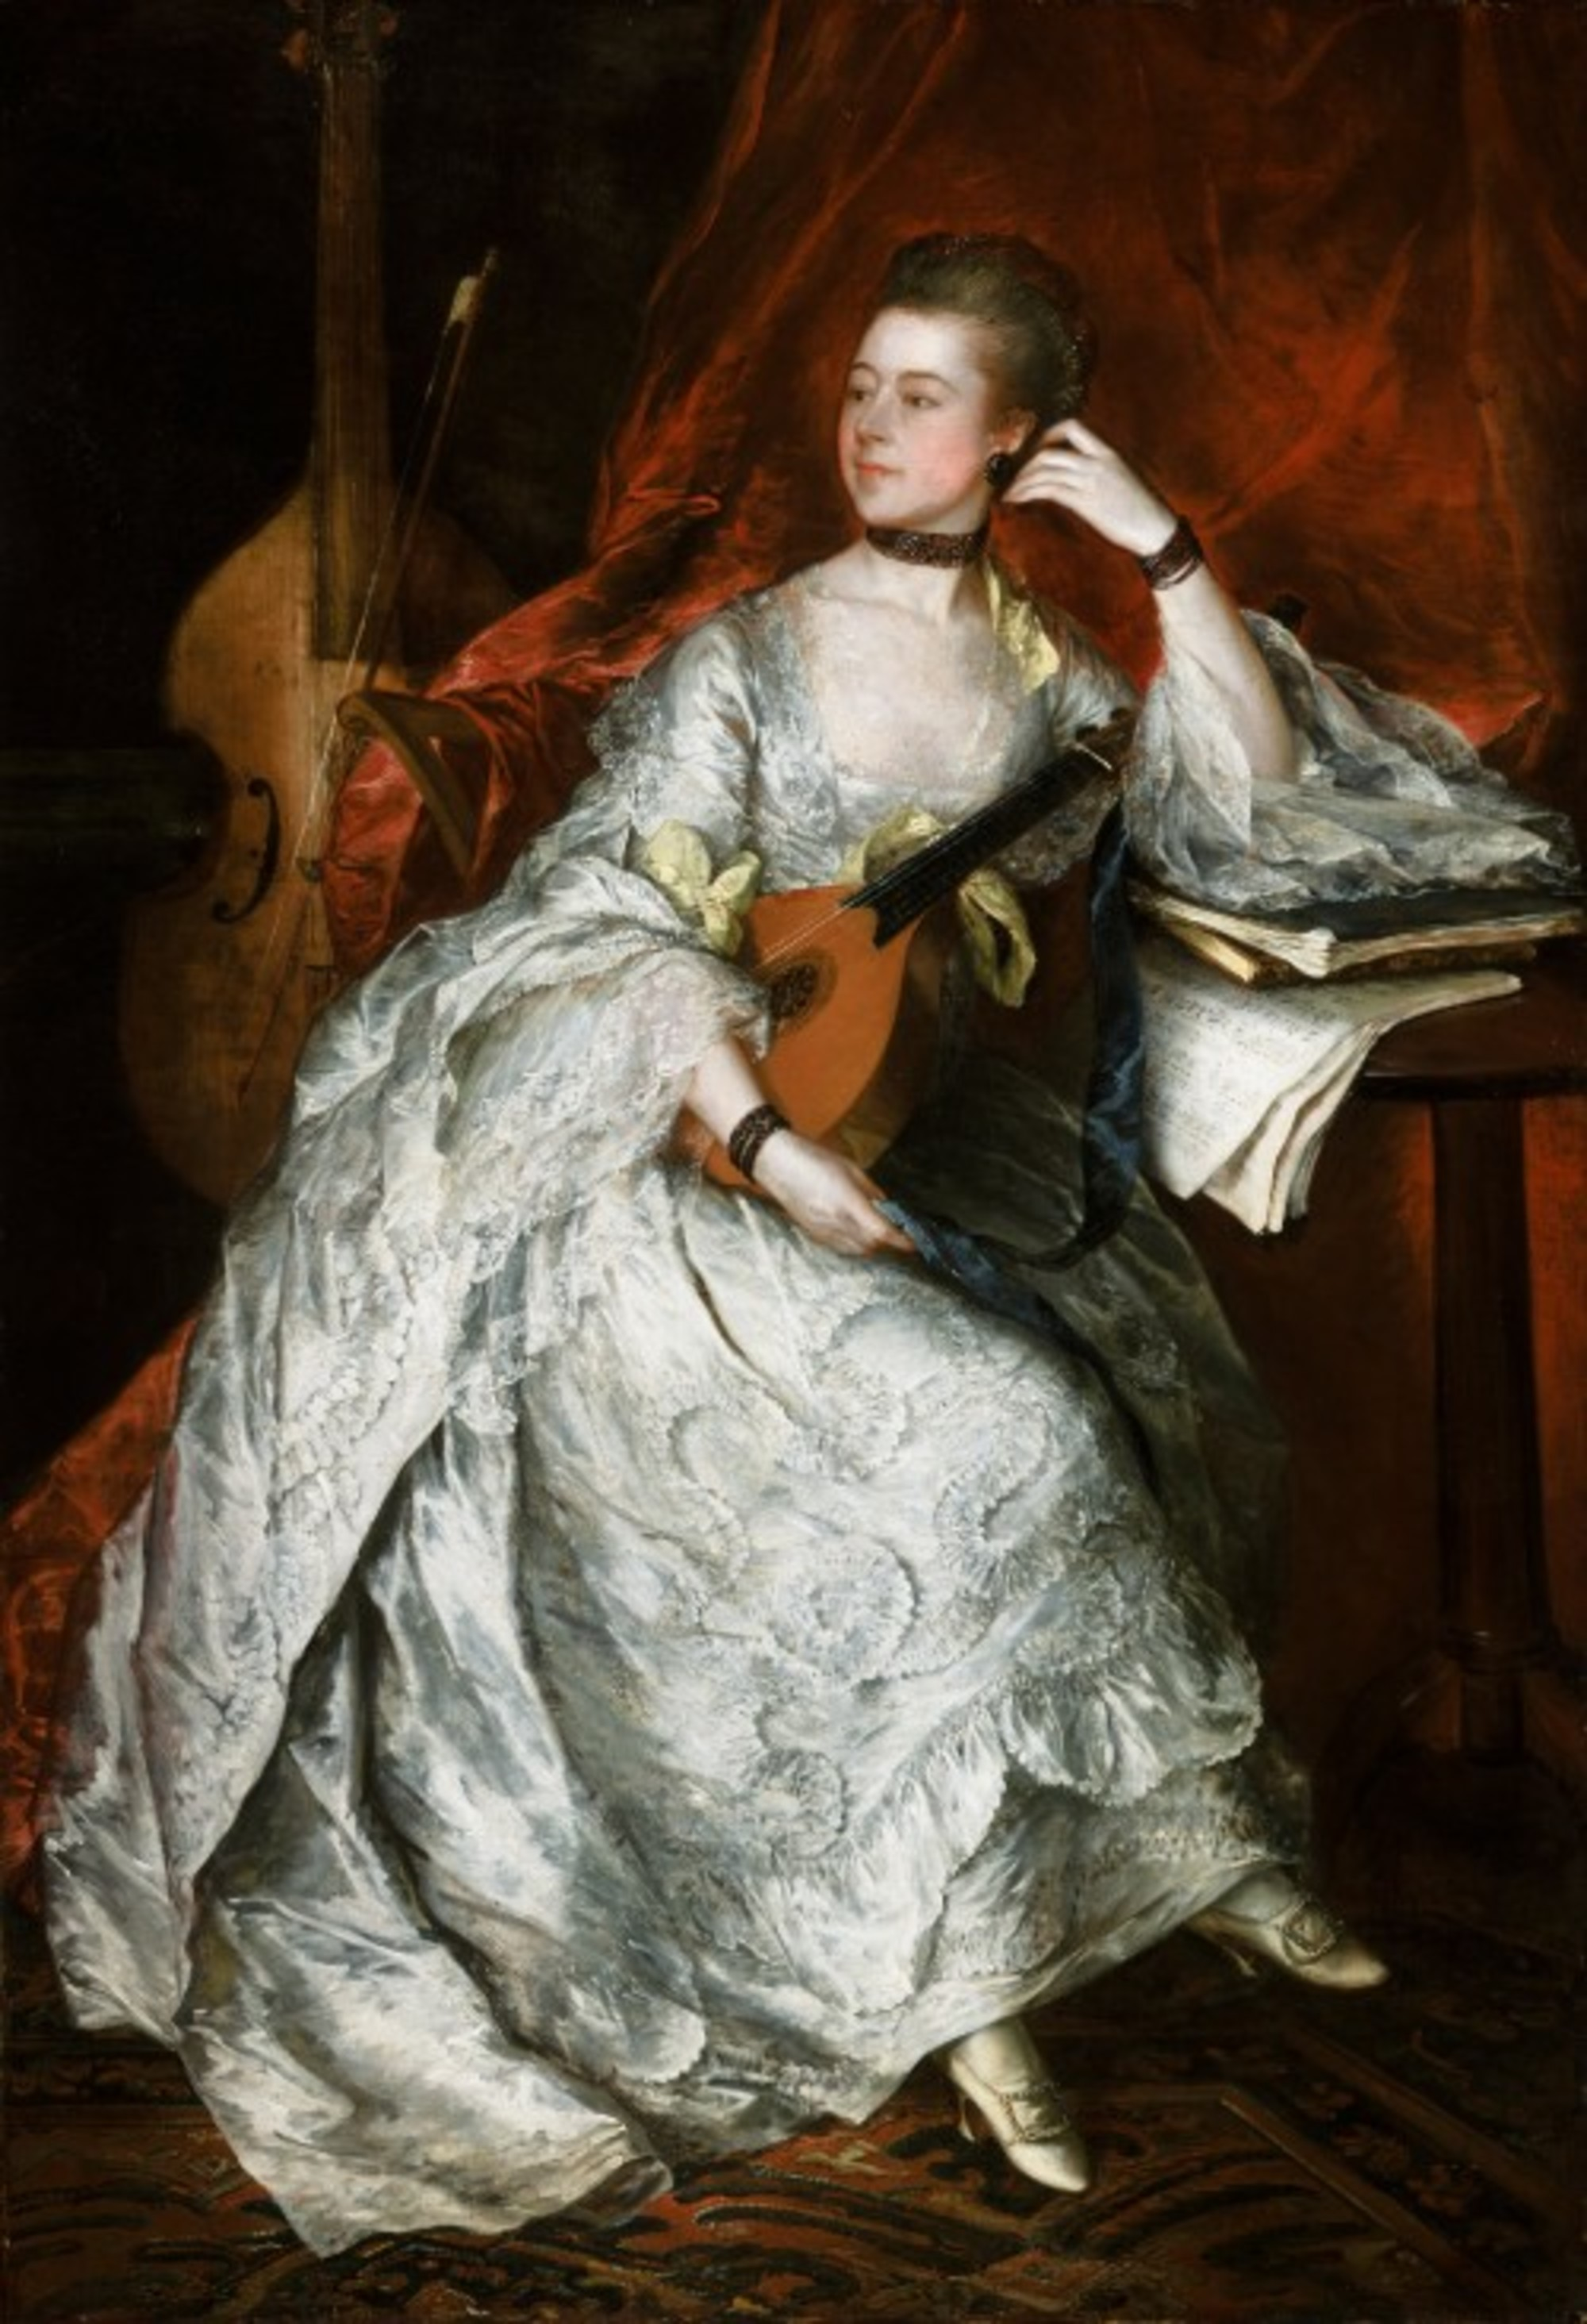 Thomas_Gainsborough_-_Ann_Ford_later_Mrs._Philip_Thicknesse_-_Google_Art_Project.jpg